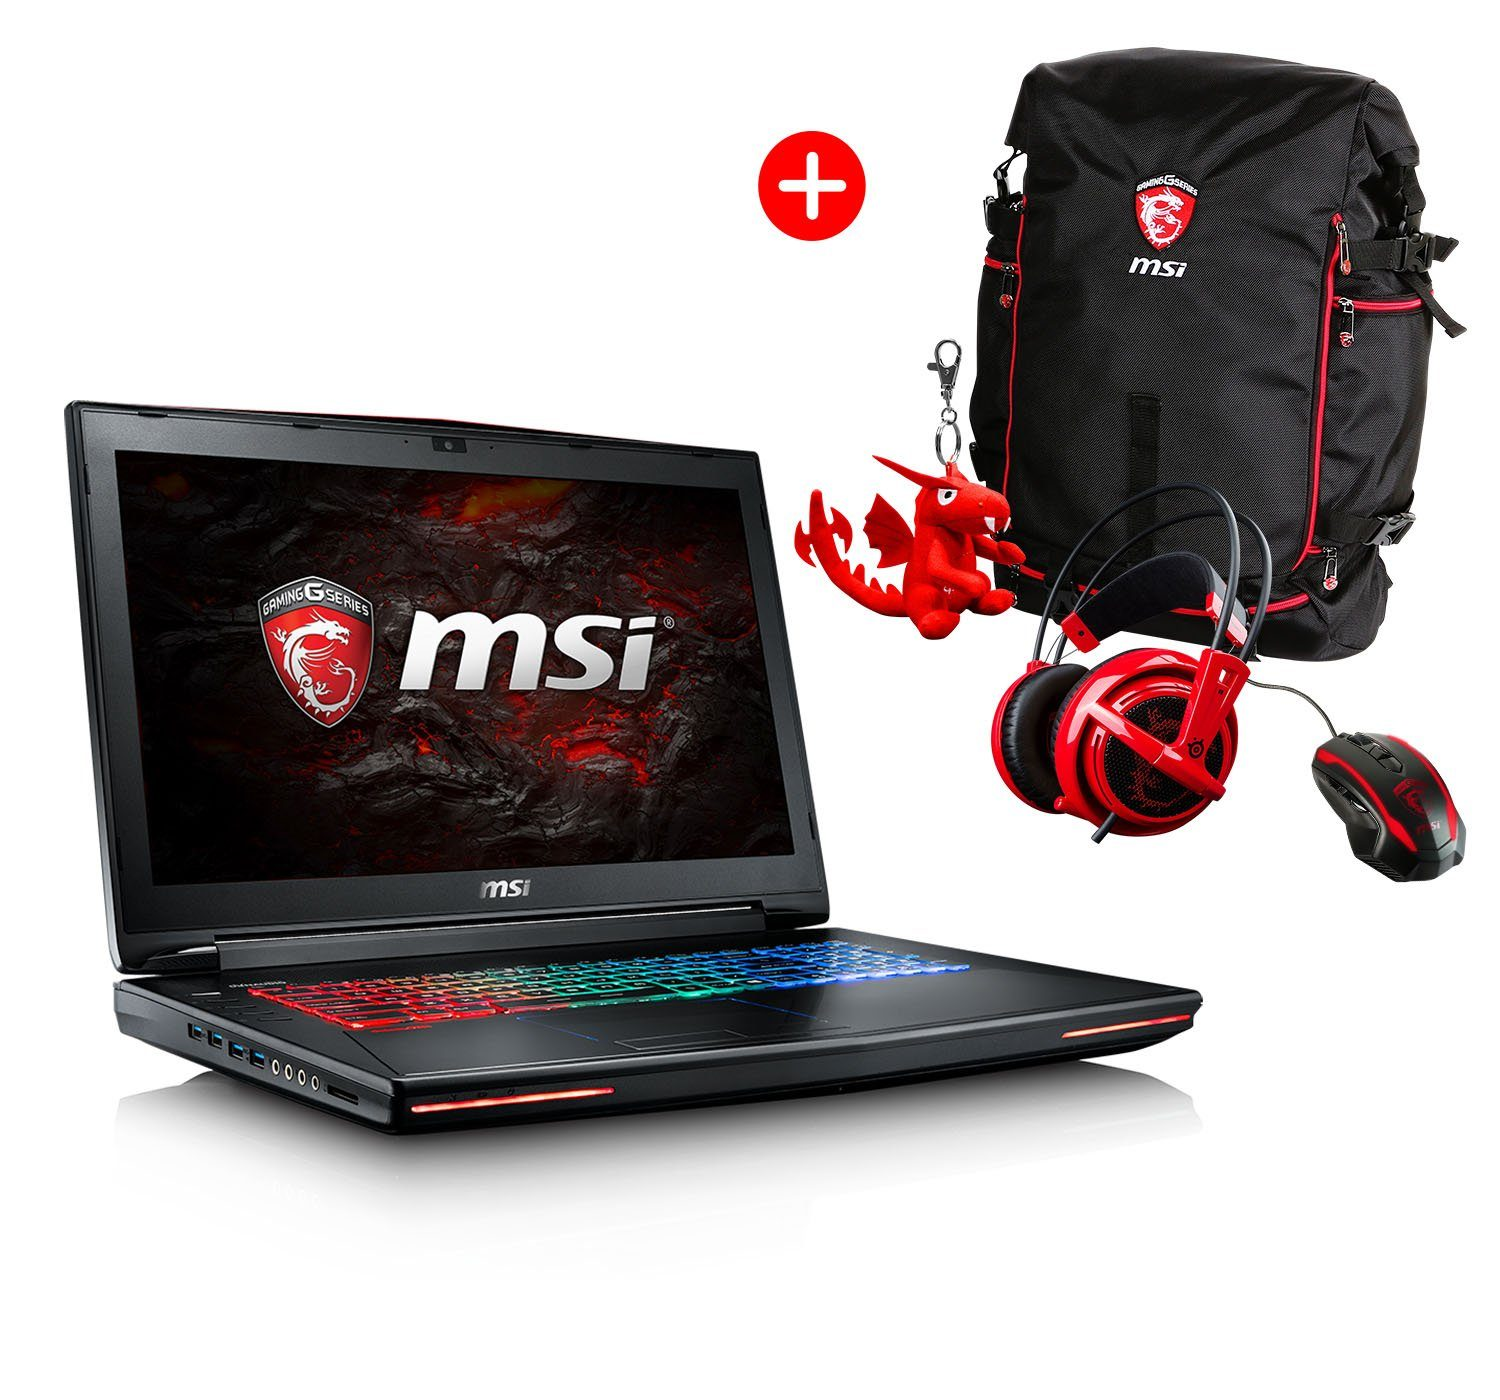 "MSI 17,3"", i7-6700HQ, 16GB RAM, SSD + HDD, GeForce® GTX 1070 »GT72VR-6REAC16H21 (001785-SKU33)«"